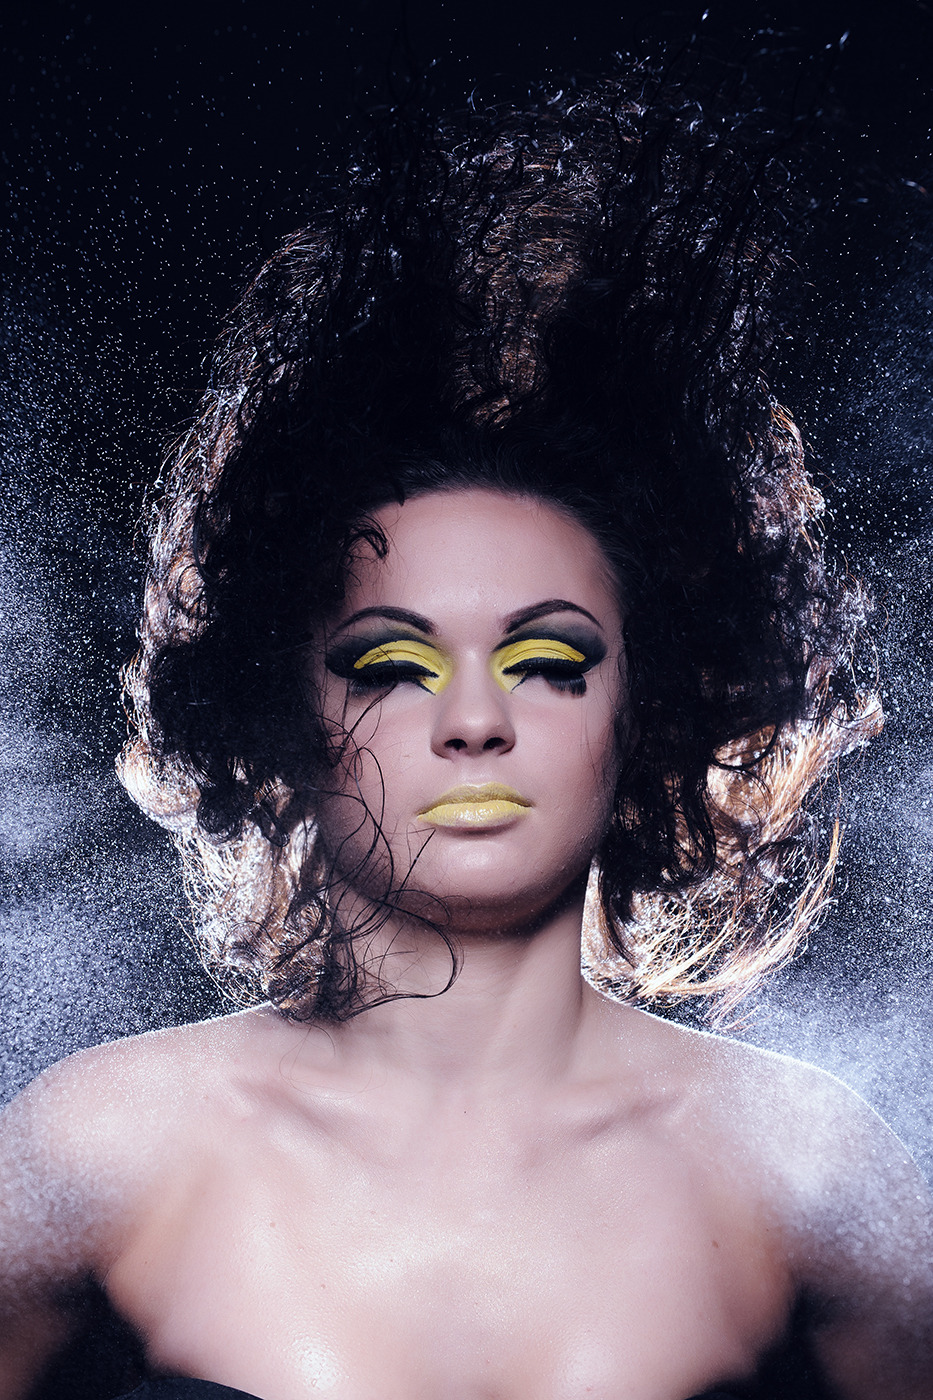 Flying hair | flying hair, yellow make-up, light skin, water